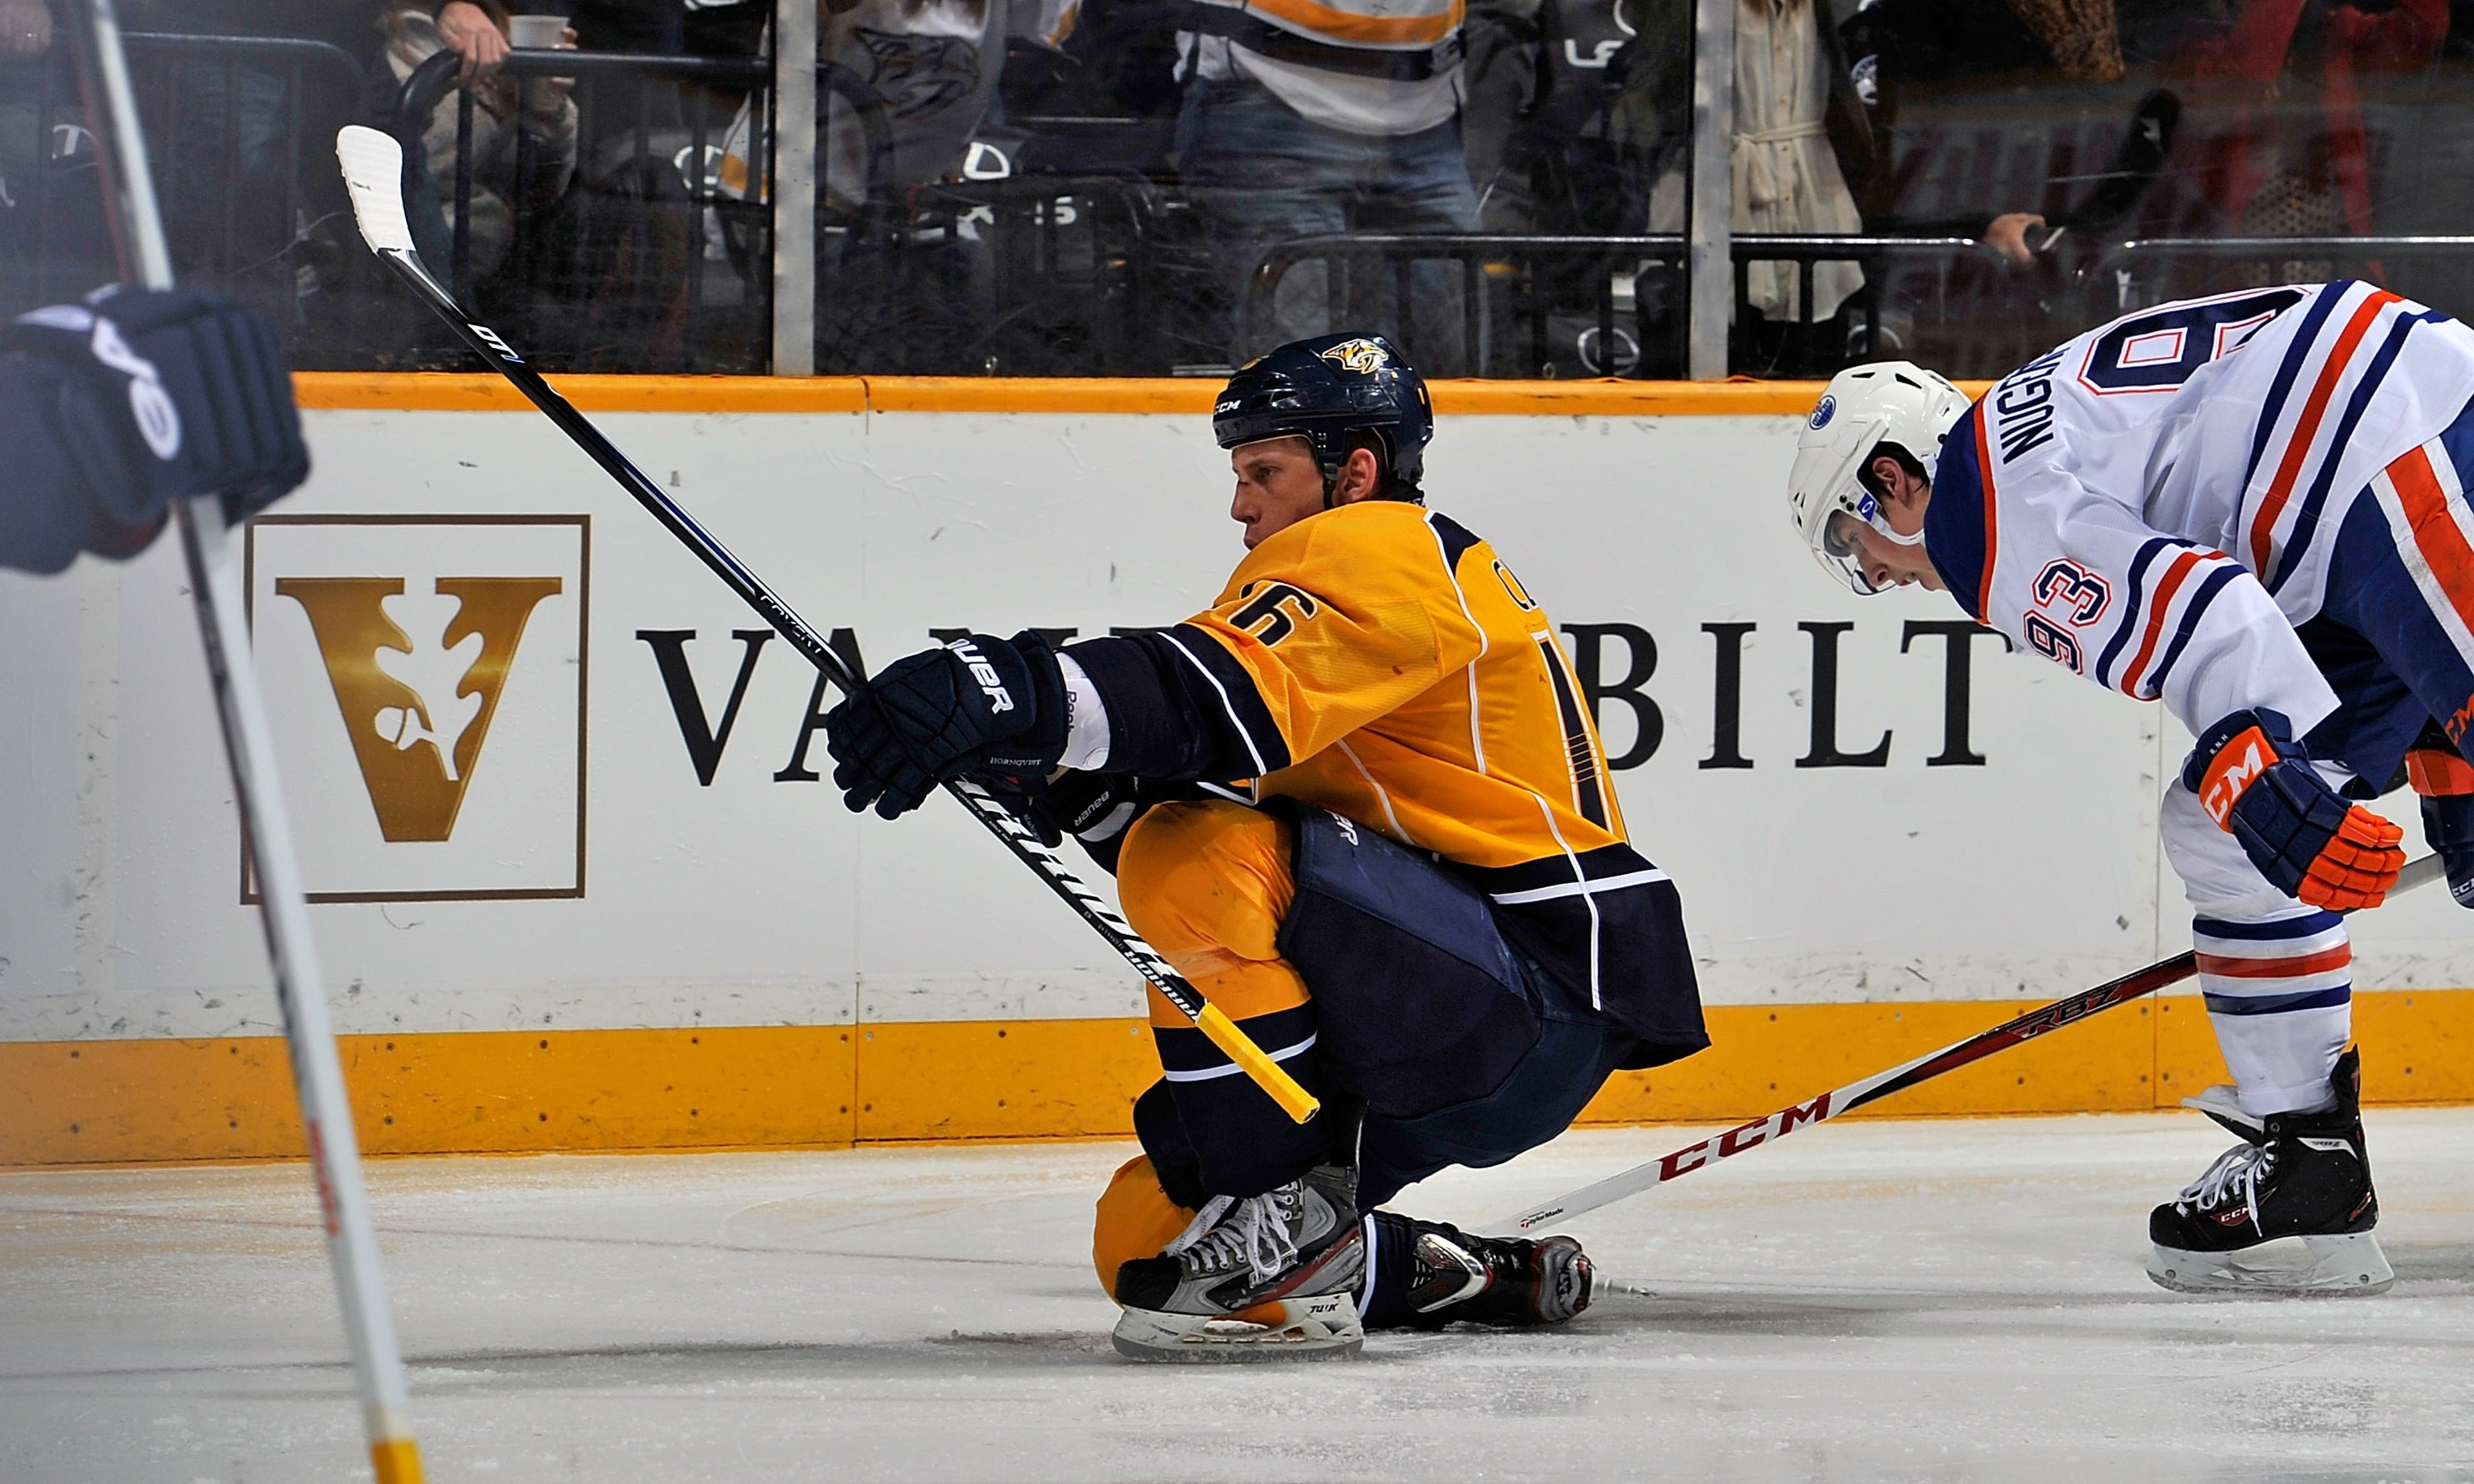 Preds F Rich Clune celebrates a goal against the Edmonton Oilers at Bridgestone Arena on March 8, 2013. Clune celebrates his freedom from alcoholism and addiction by trying to help others.